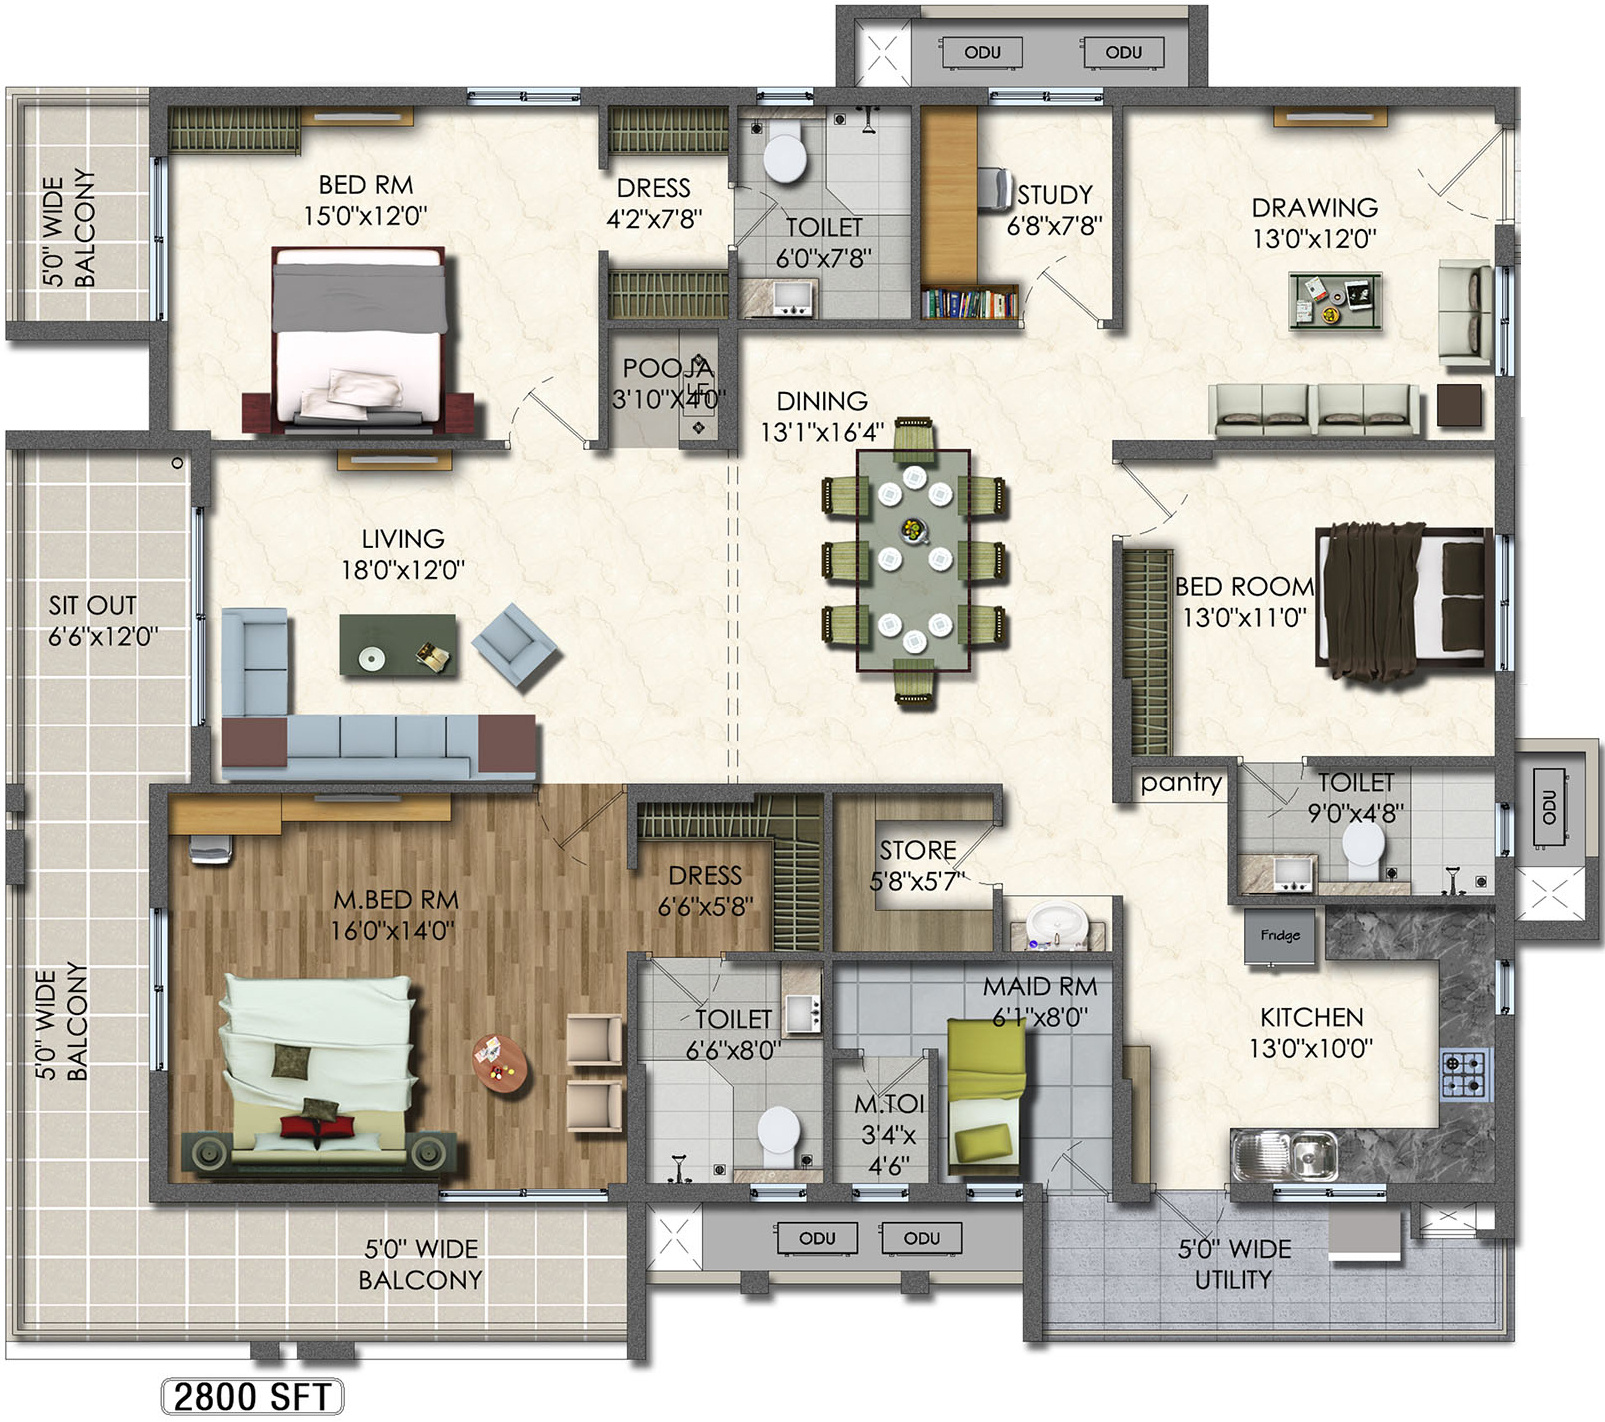 Apartment Floor Plans In Hyderabad aparna westside in manikonda, hyderabad - price, location map